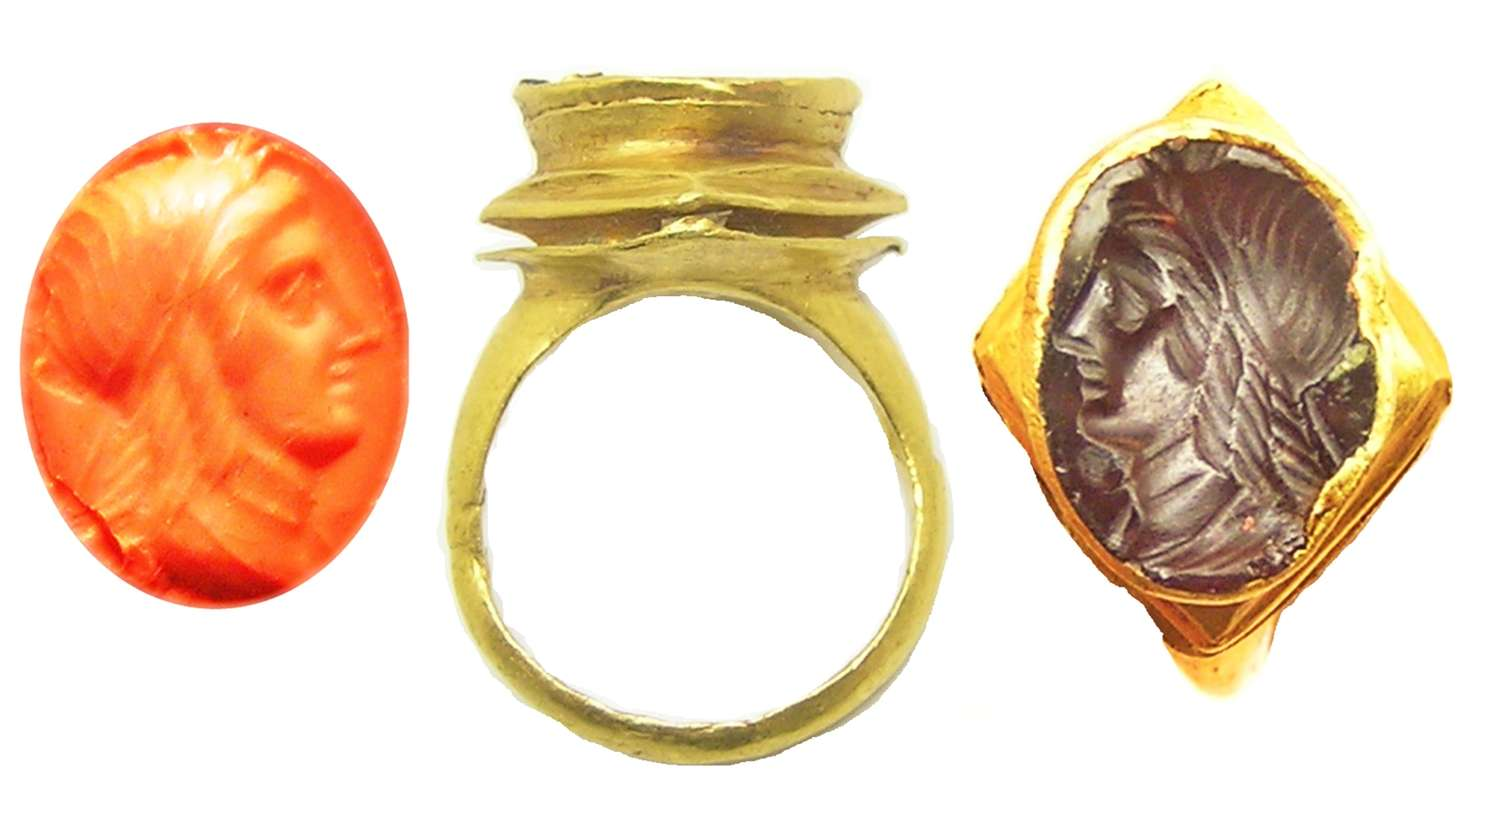 Hellenistic Ptolemaic gold and garnet intaglio ring